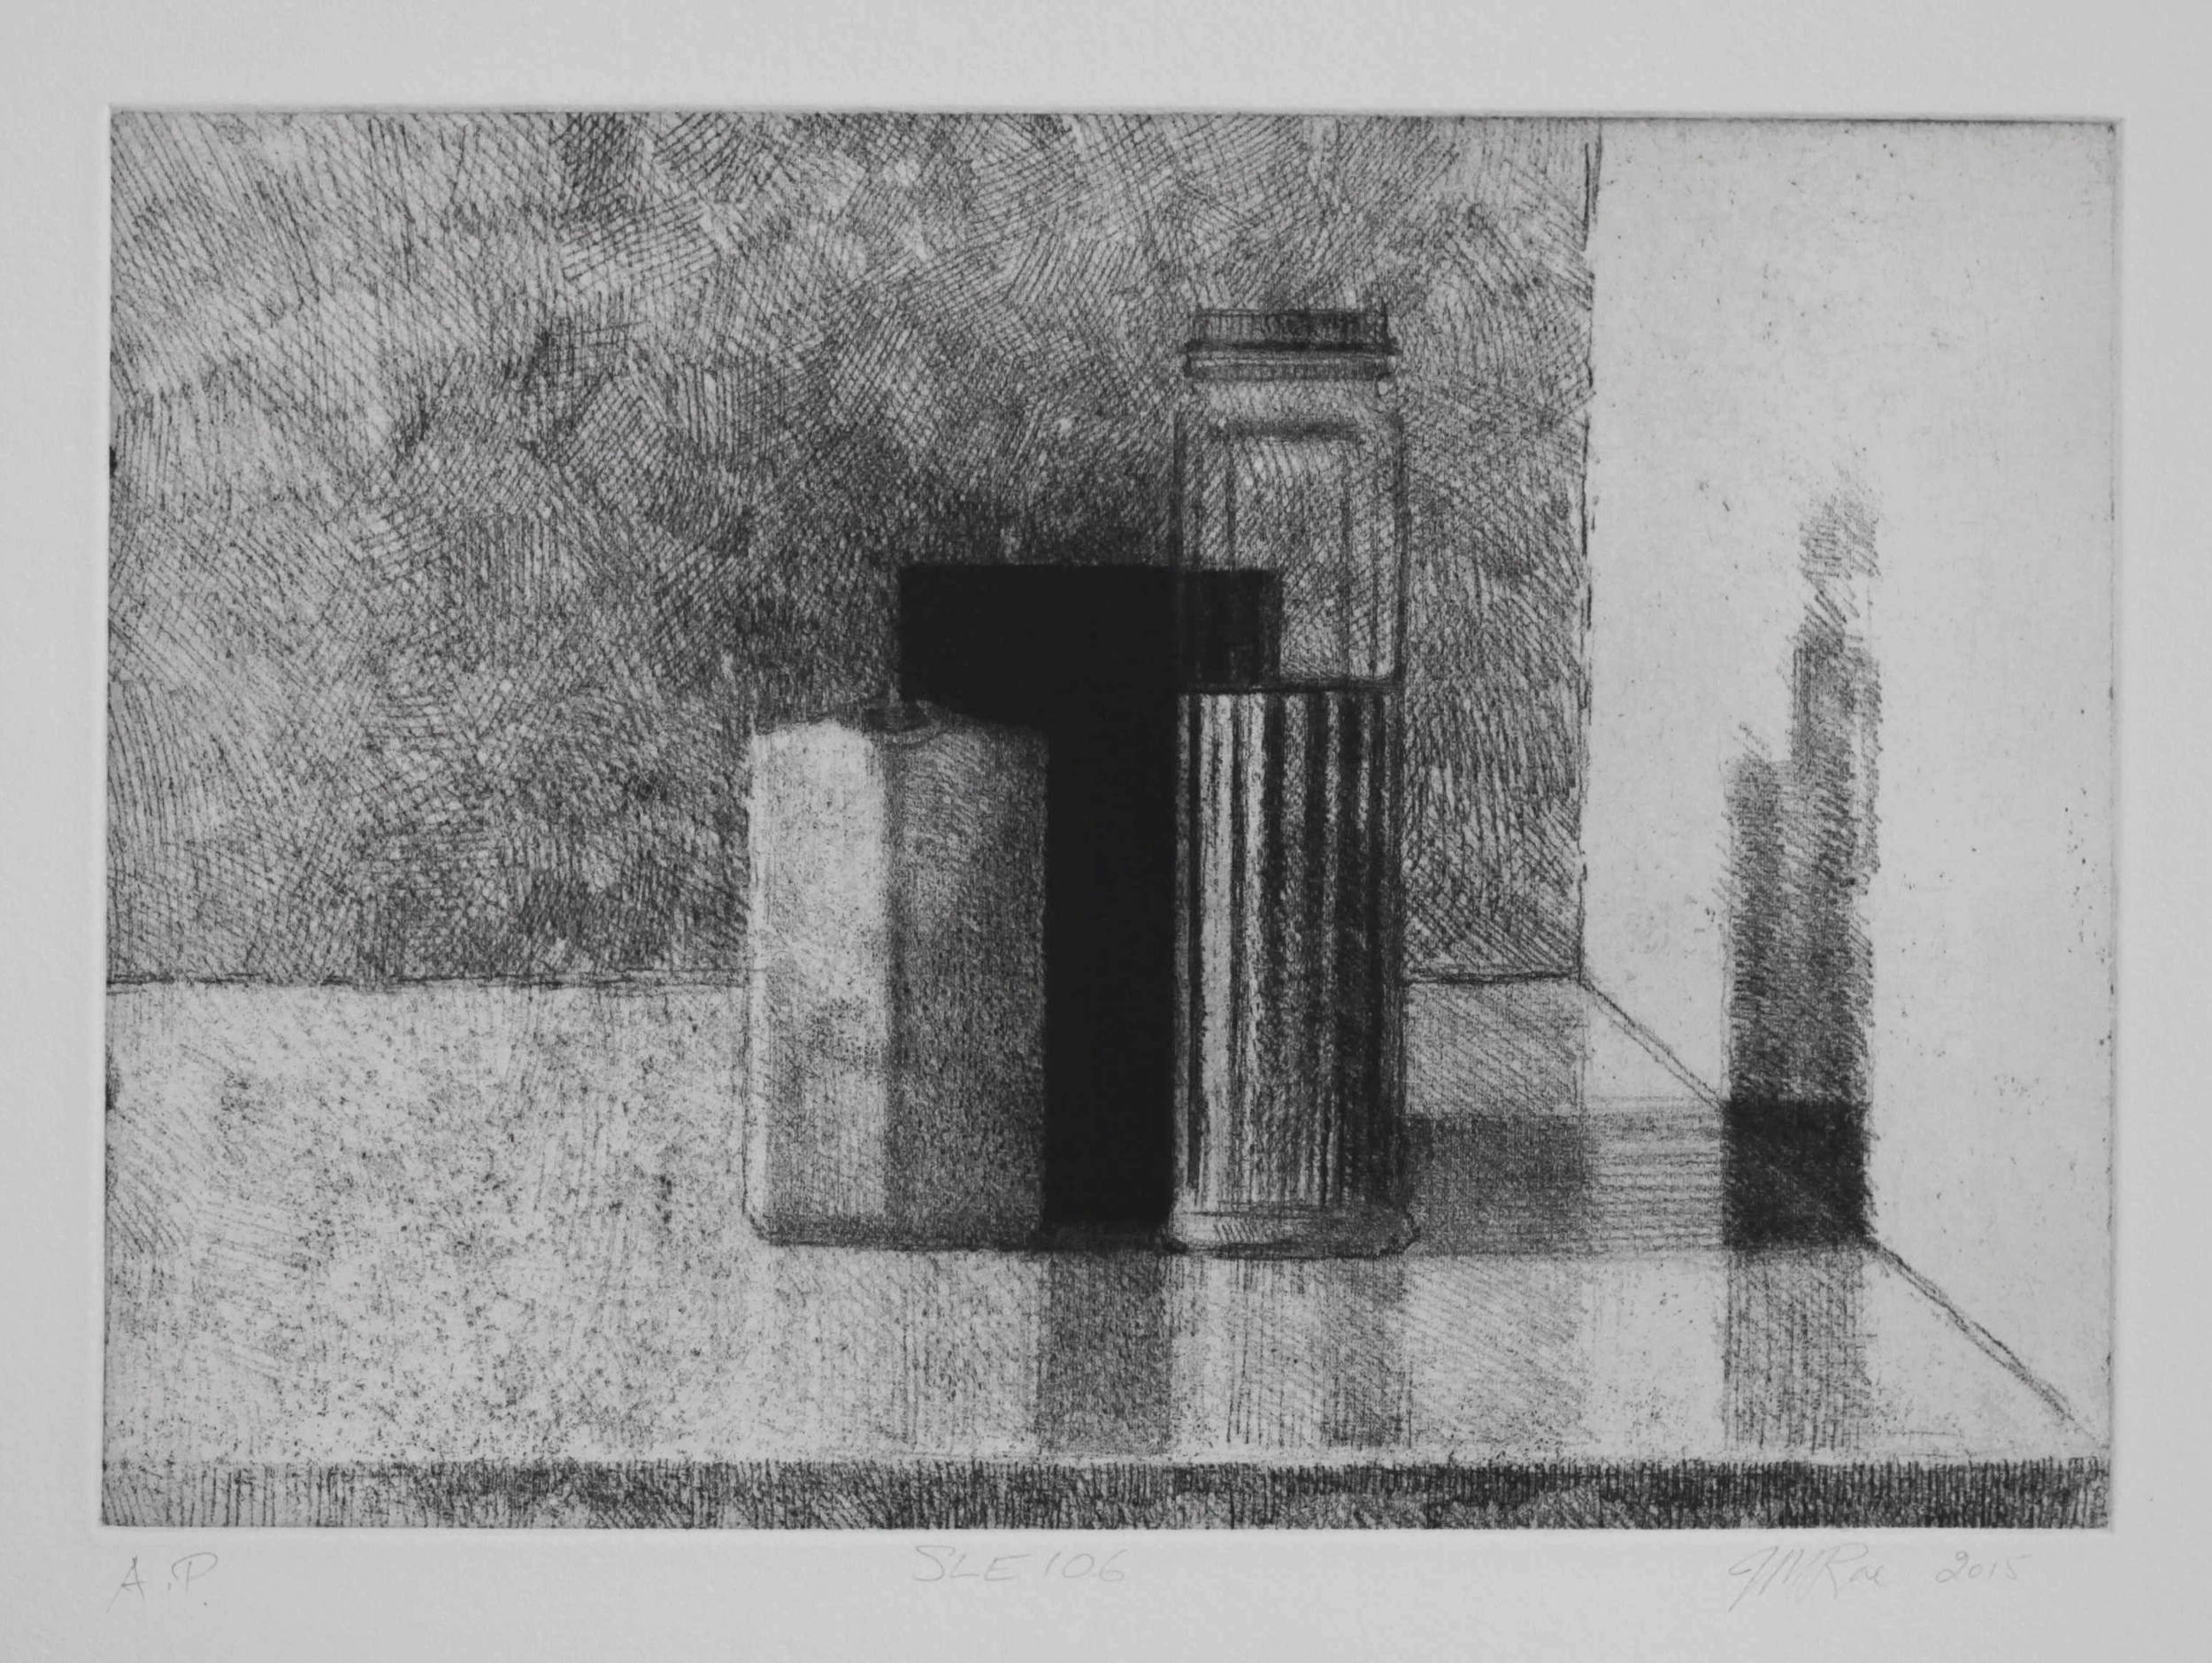 SLE106, 2015, soft ground etching with foul bite on Hahnemühle paper 615mmx 530 (plate 292mm x 208mm).